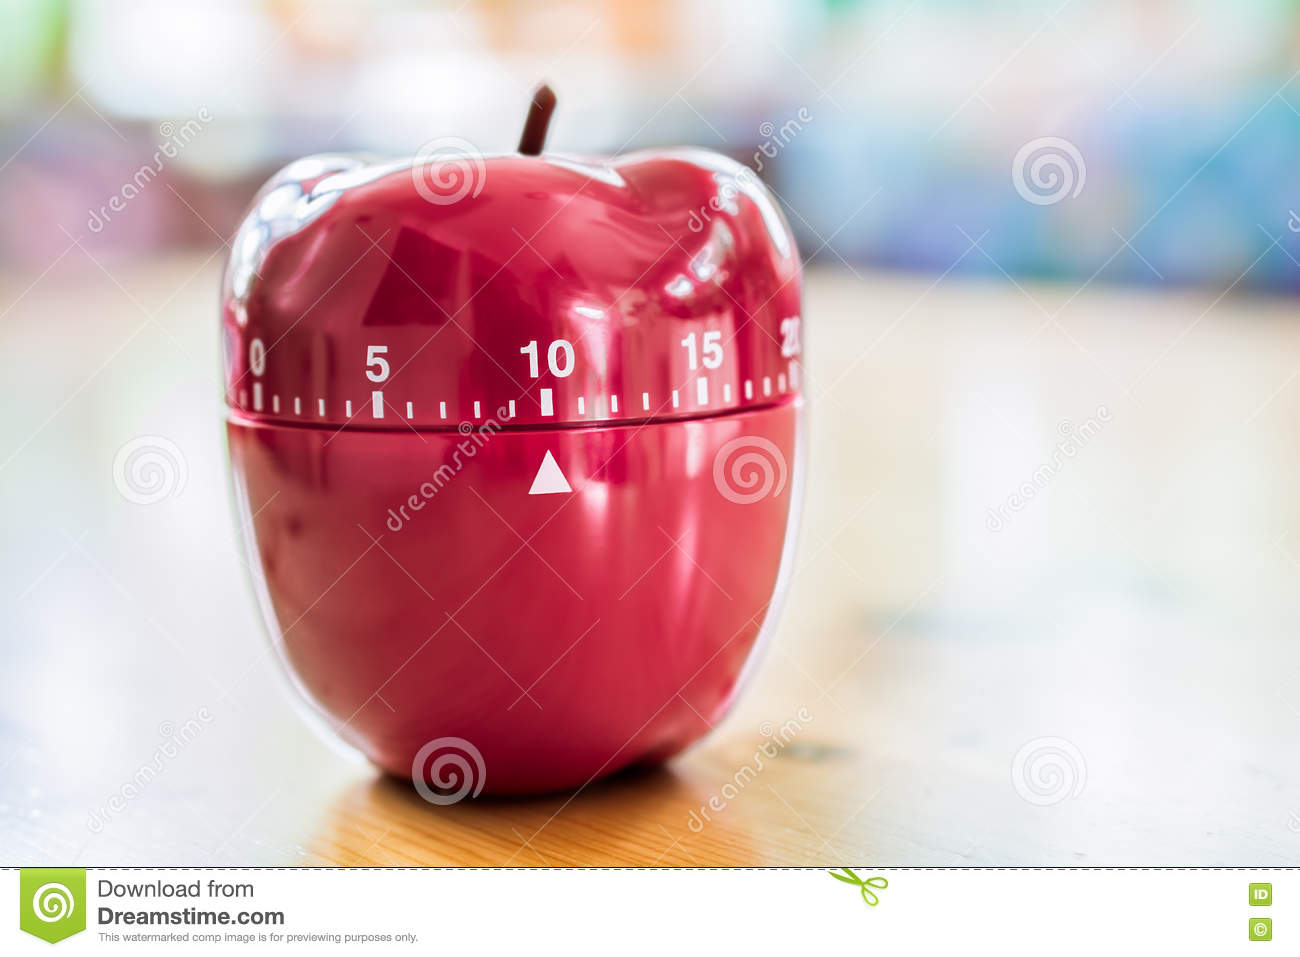 10 Minutes - Kitchen Egg Timer In Apple Shape On Wooden Table Stock